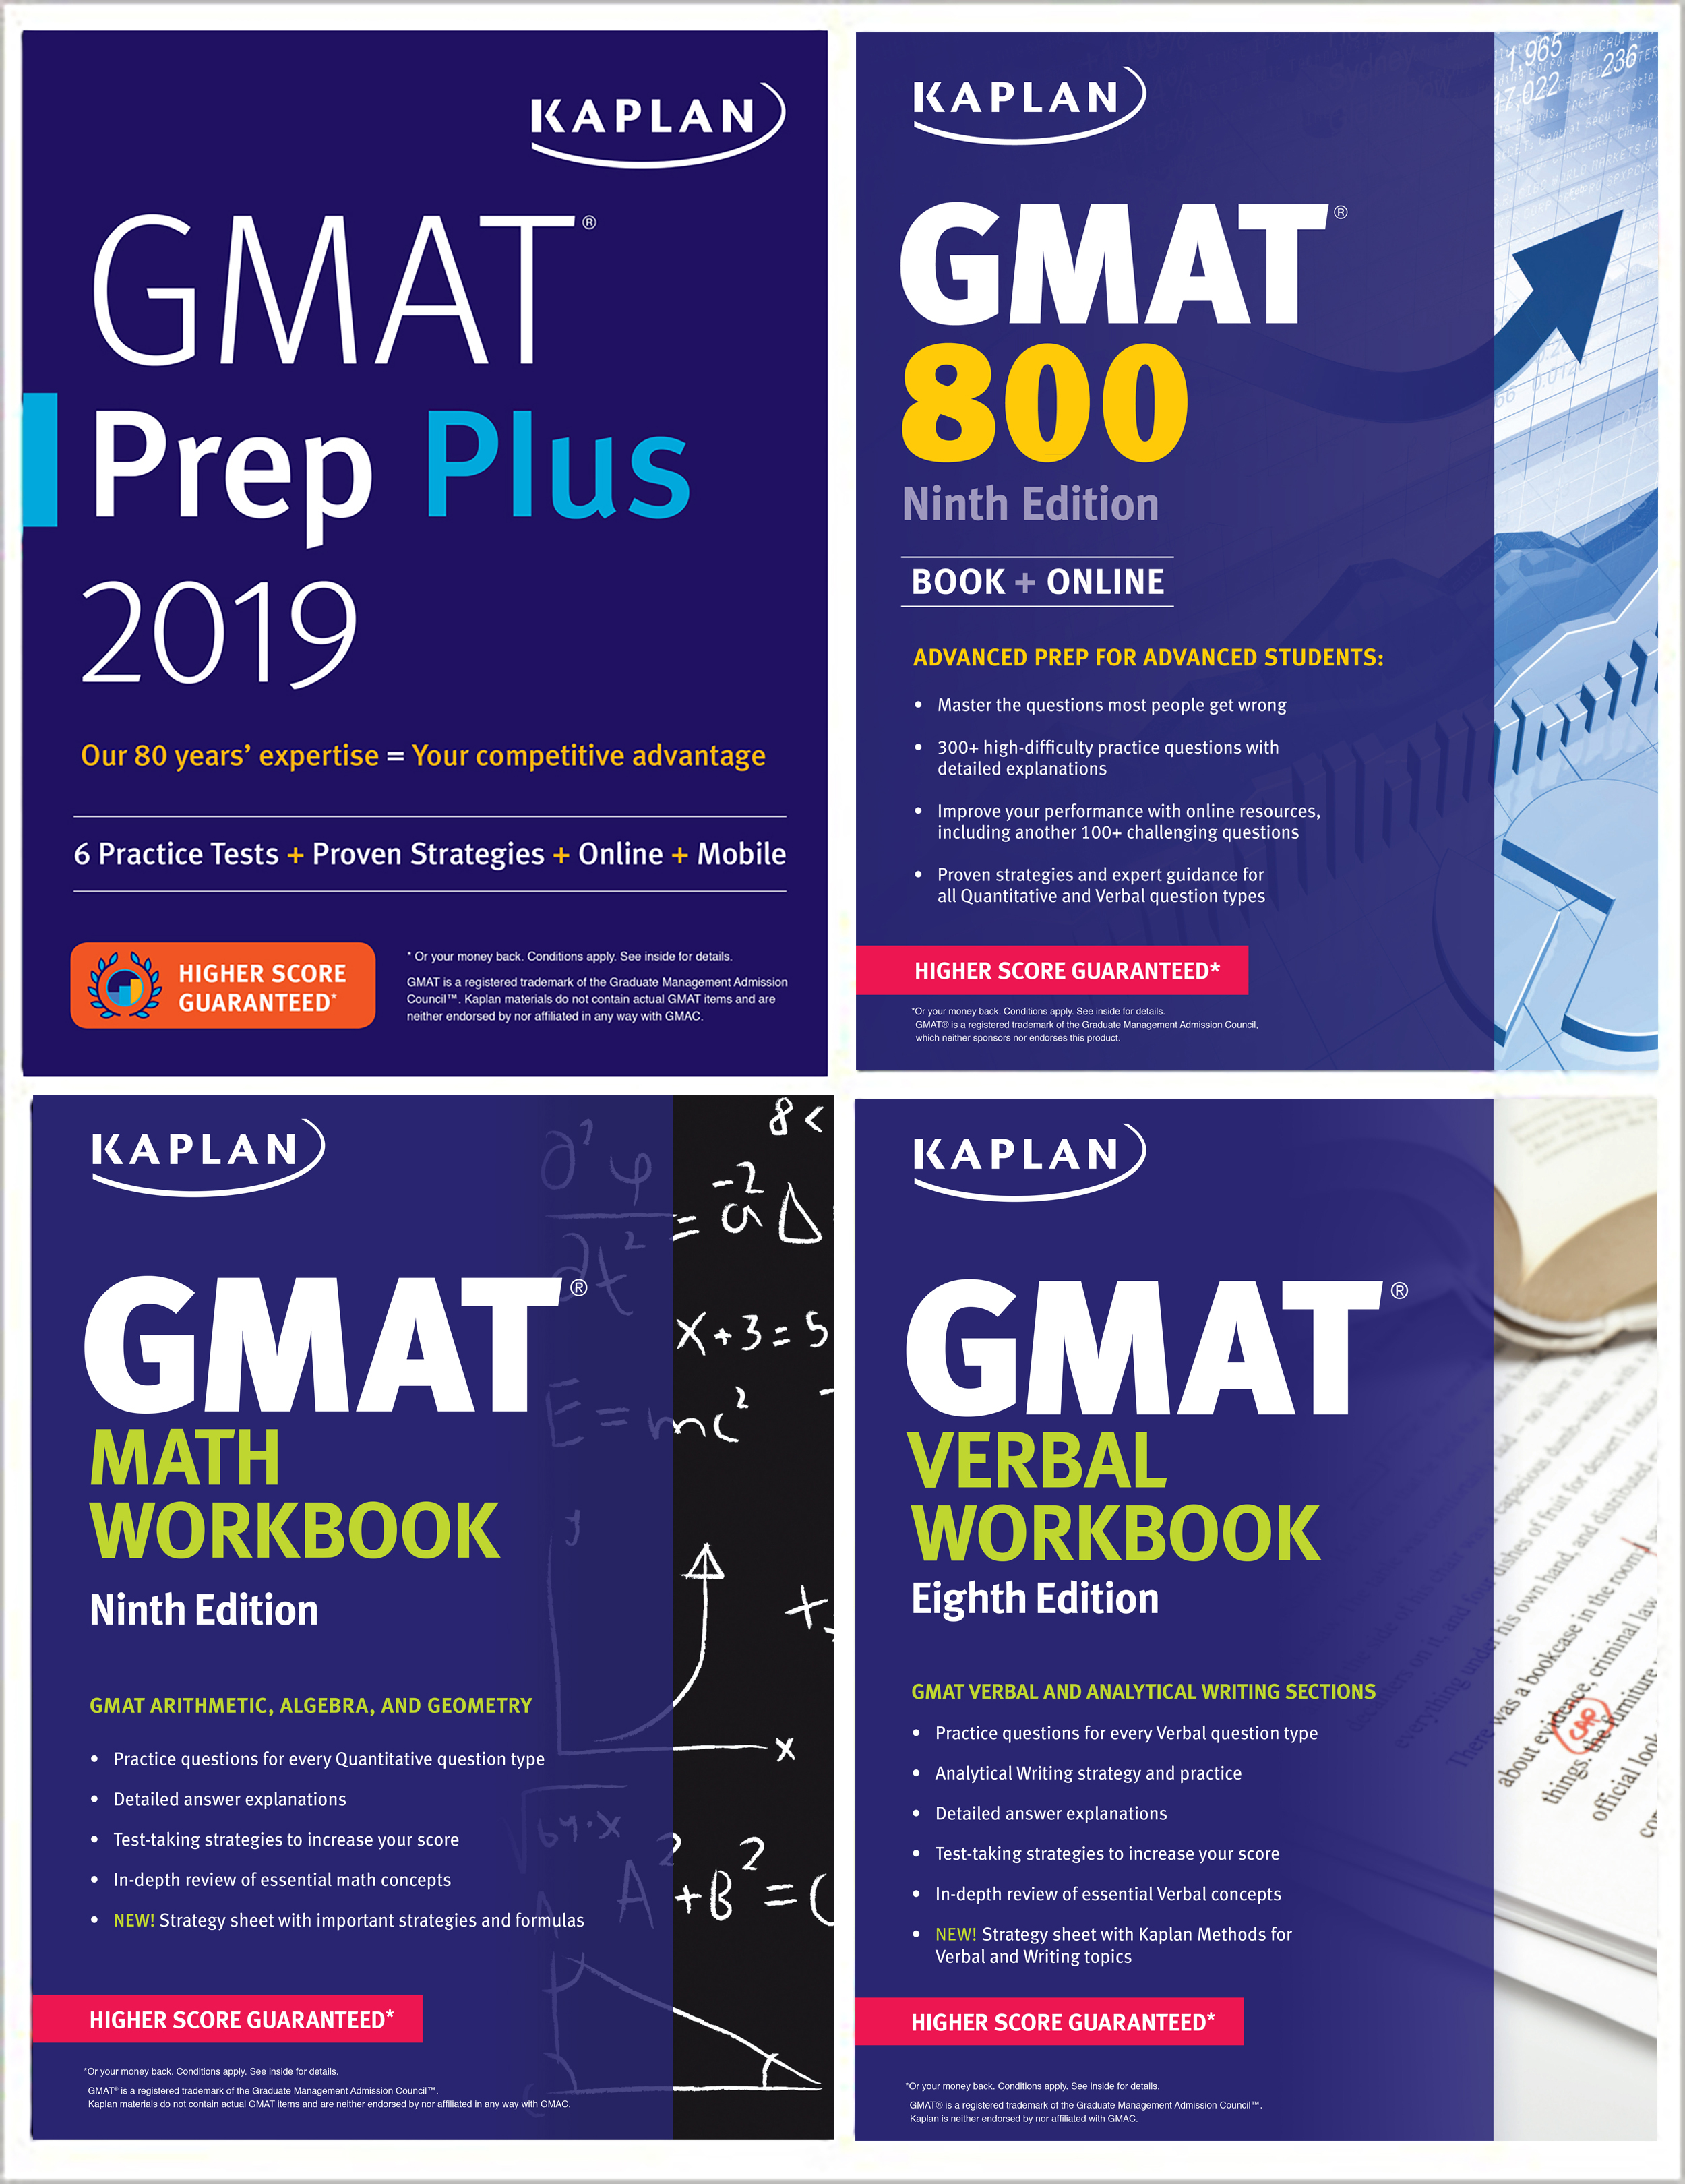 Top 10 GMAT Prep Books of 2019 | Video Review